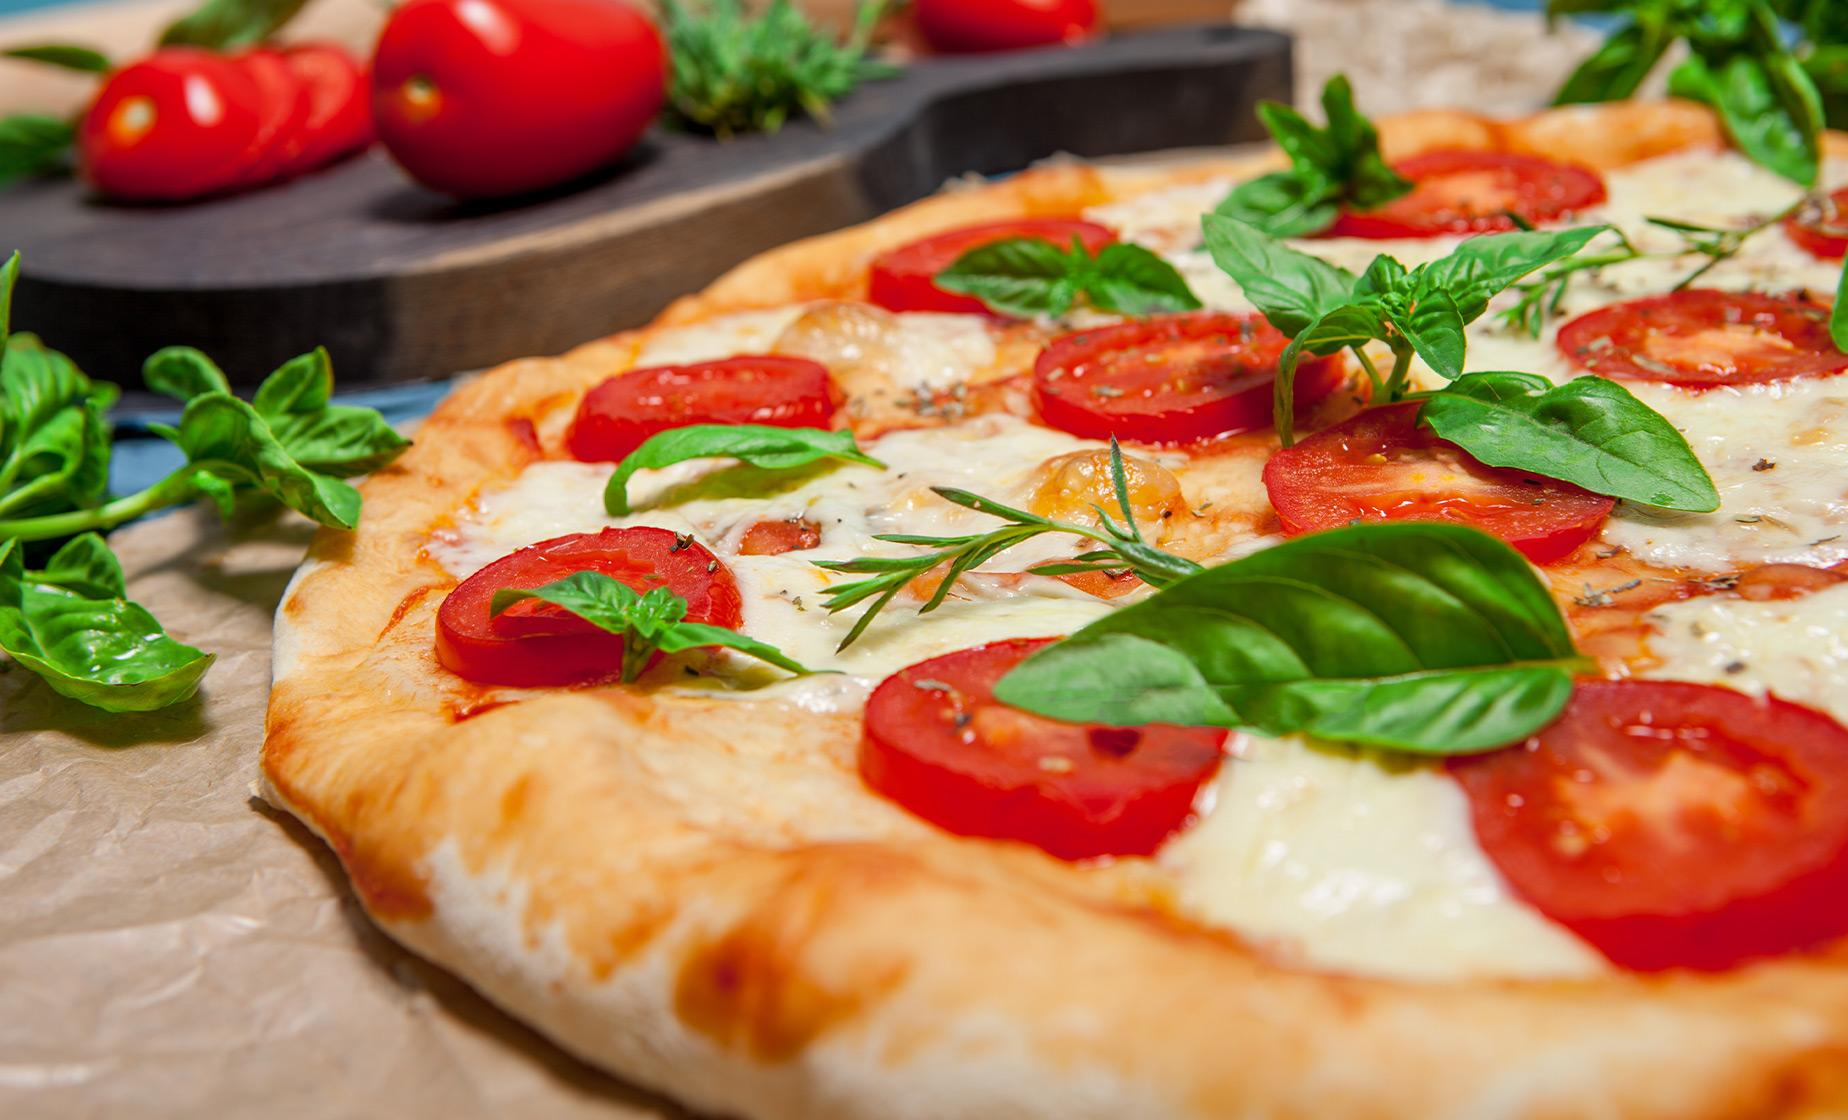 Neapolitan Pizza Tasting & Naples City Tour through San Gregorio